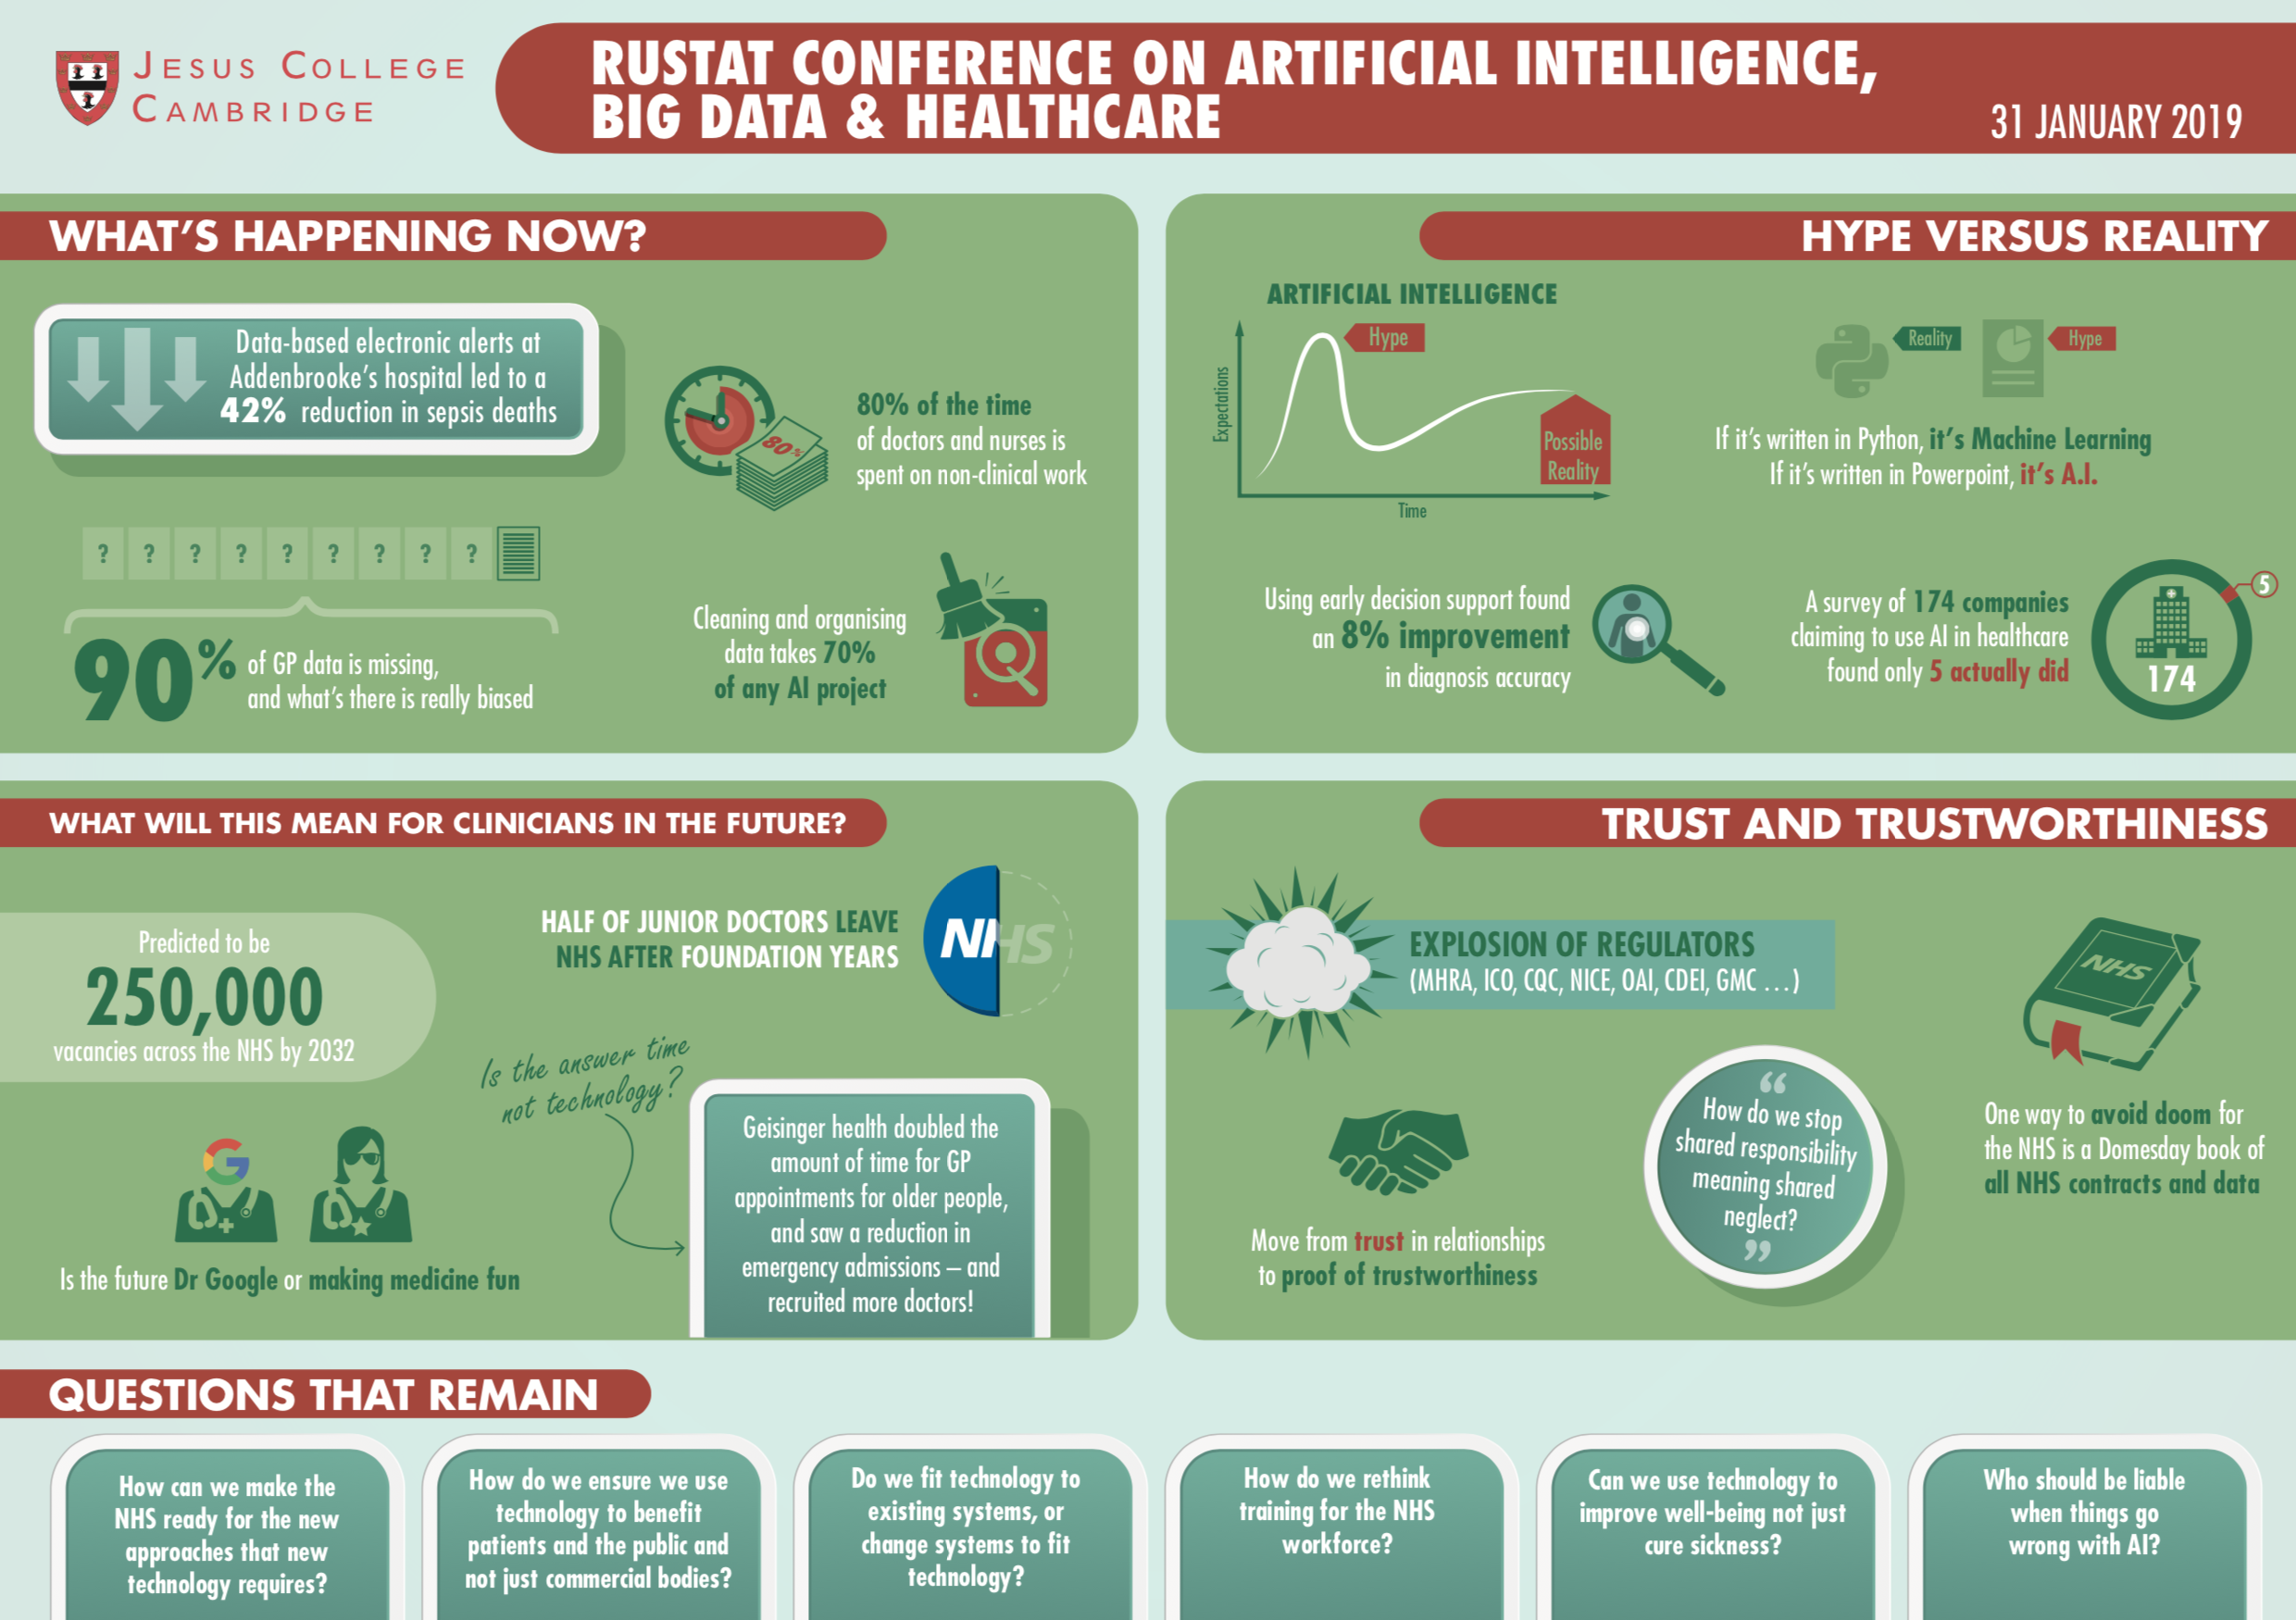 Rustat Report on Artificial Intelligence, Big Data and Healthcare